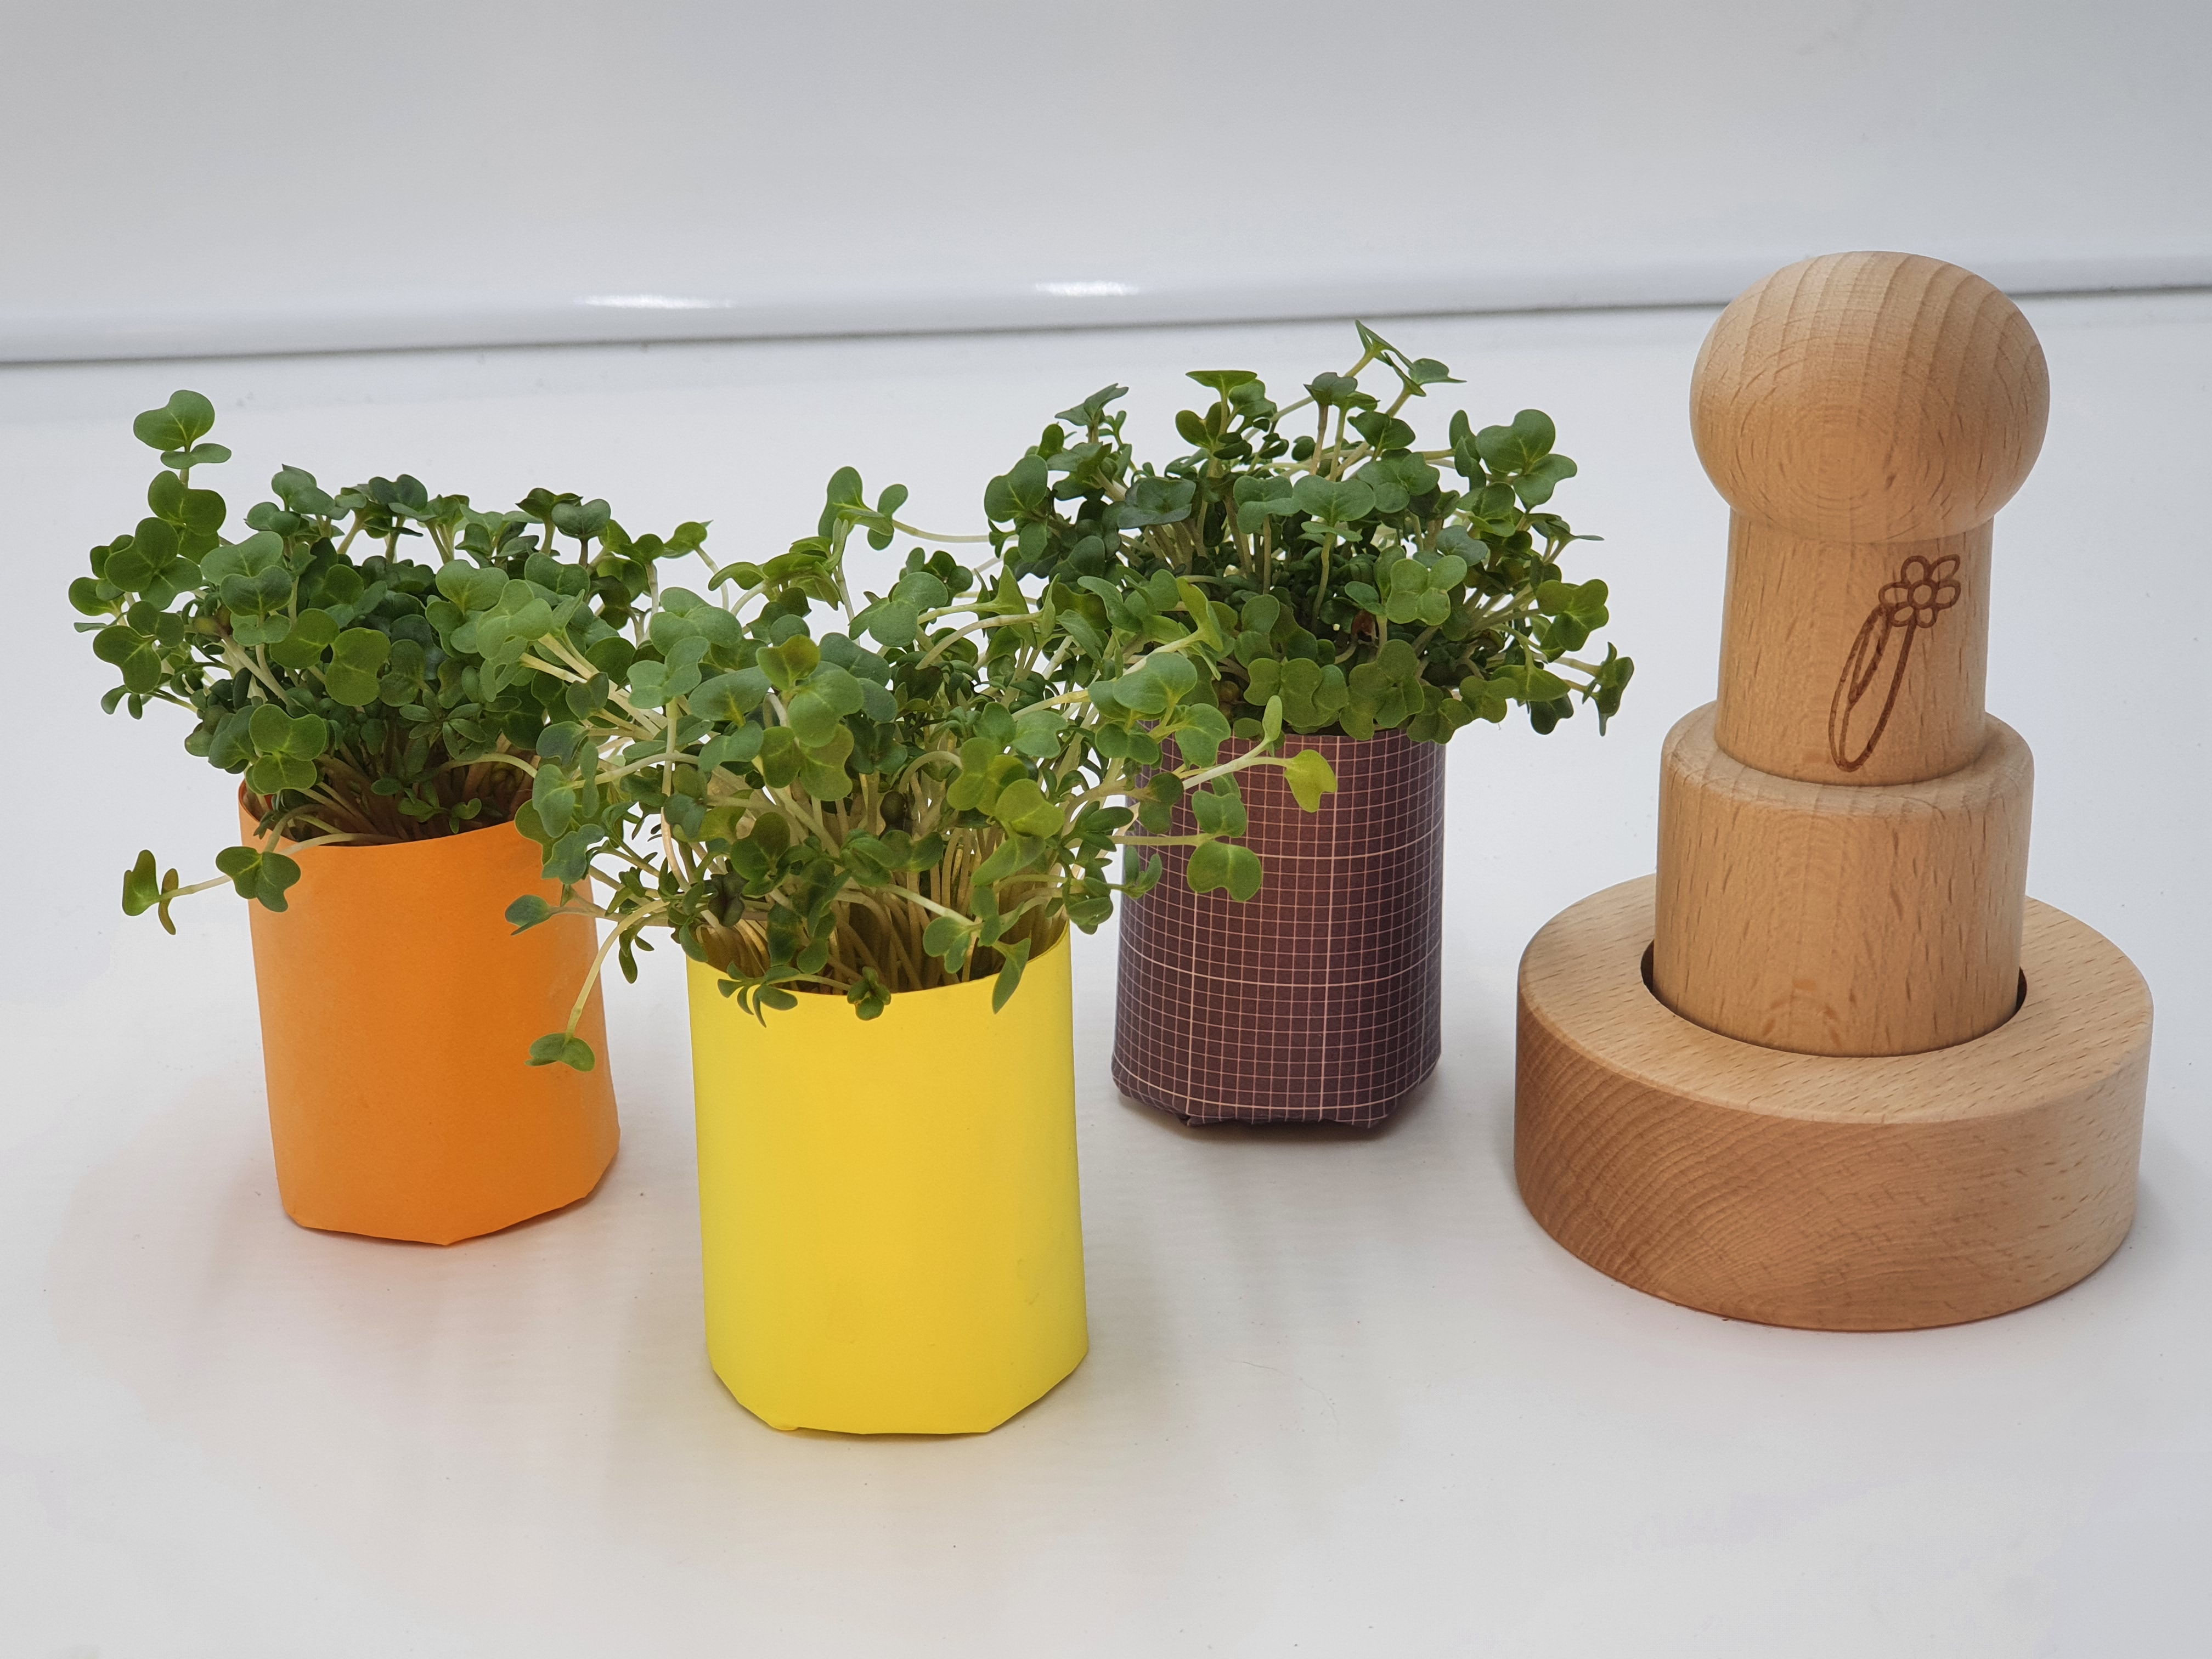 e-pots paper pot maker with cress in seed pots